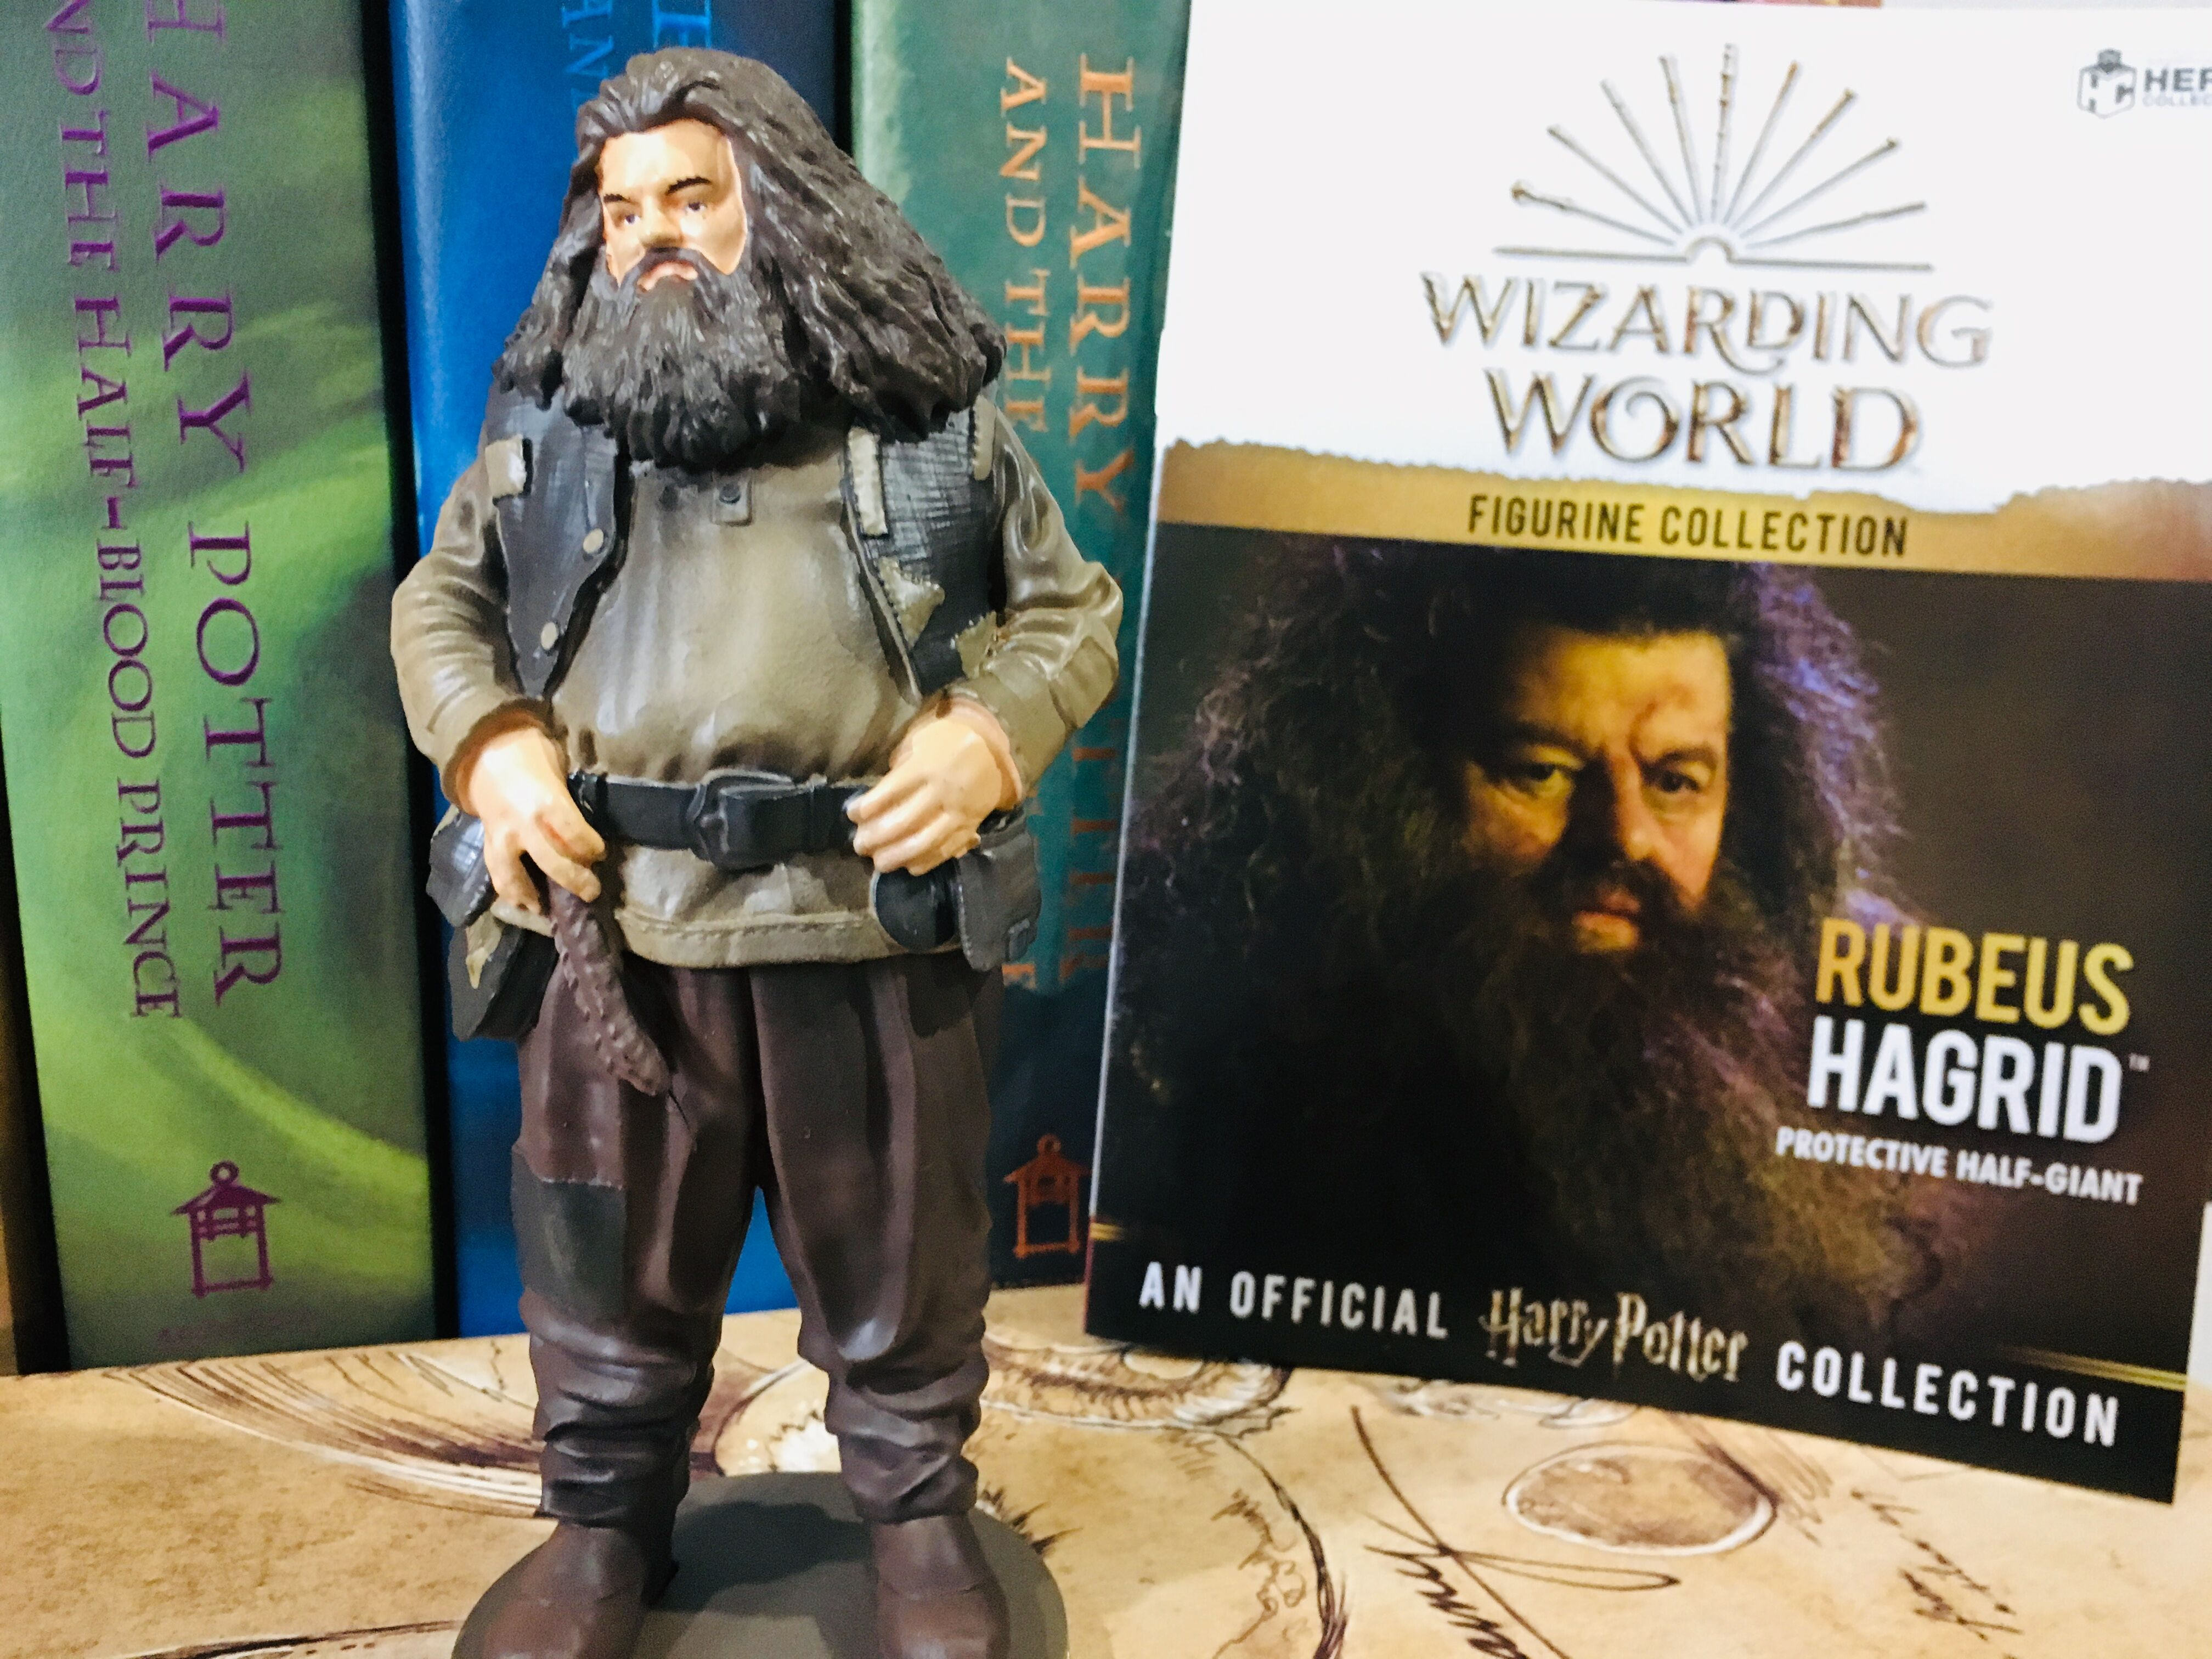 This figurine comes with an exclusive booklet full of information that tells you all about your new wizarding world figurine.